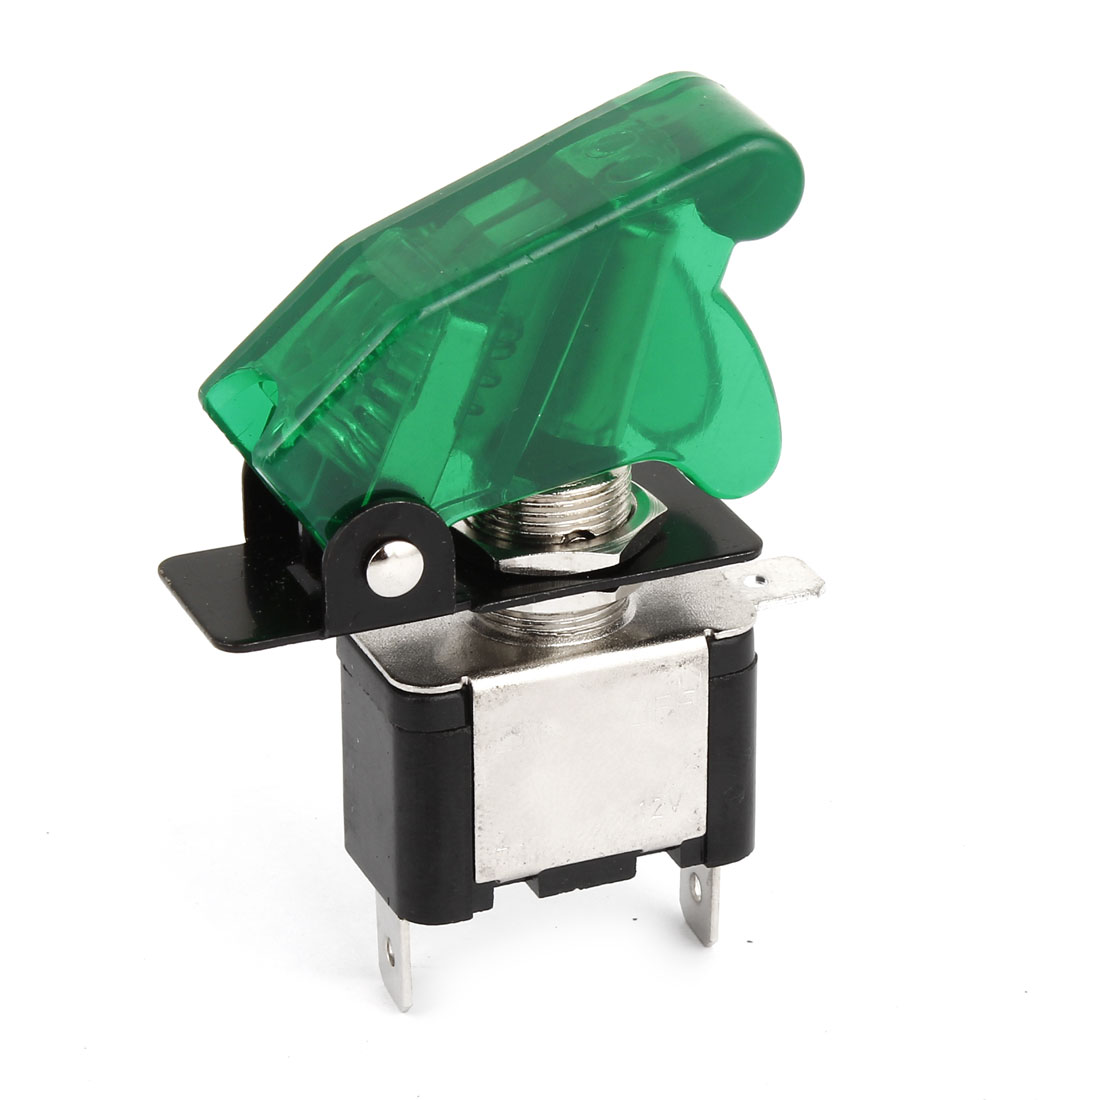 Green 12V 20A Car Truck Cover LED SPST Toggle Rocker Switch Control On/Off